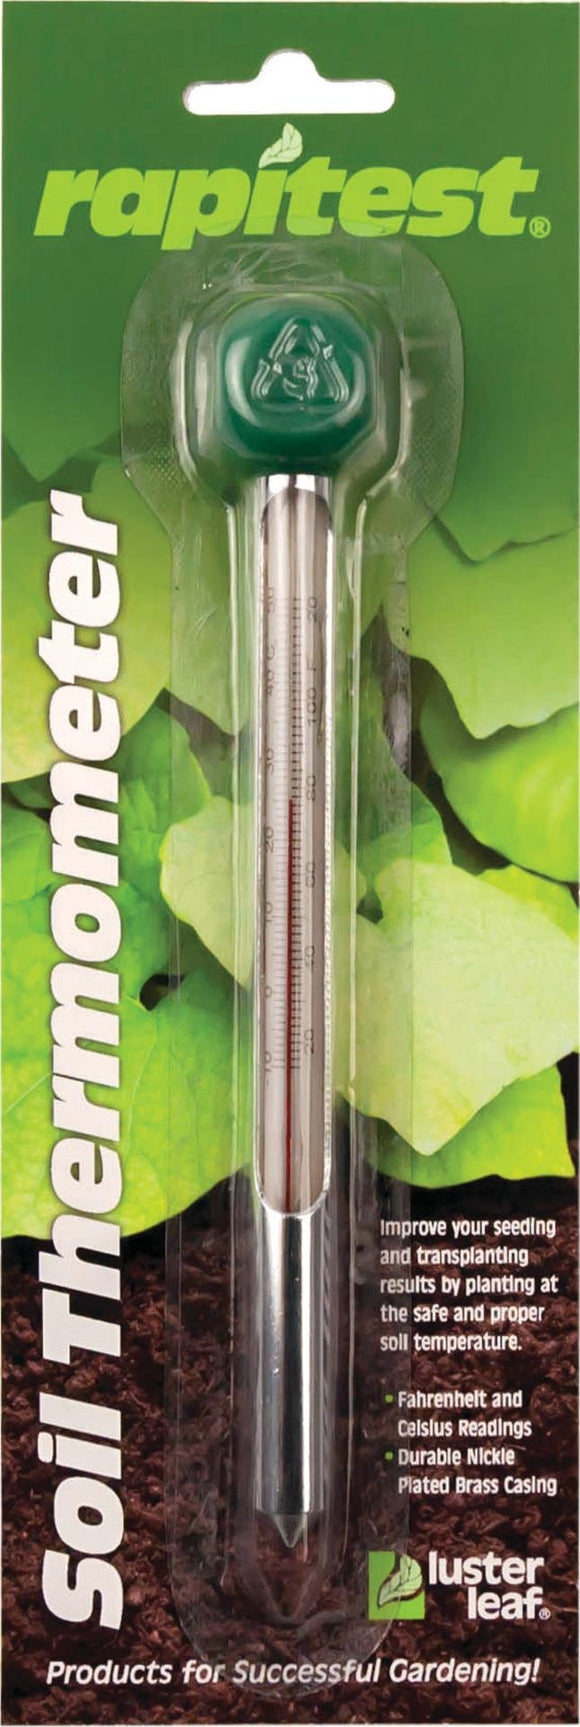 Luster Leaf - Soil Thermometer °f & °c